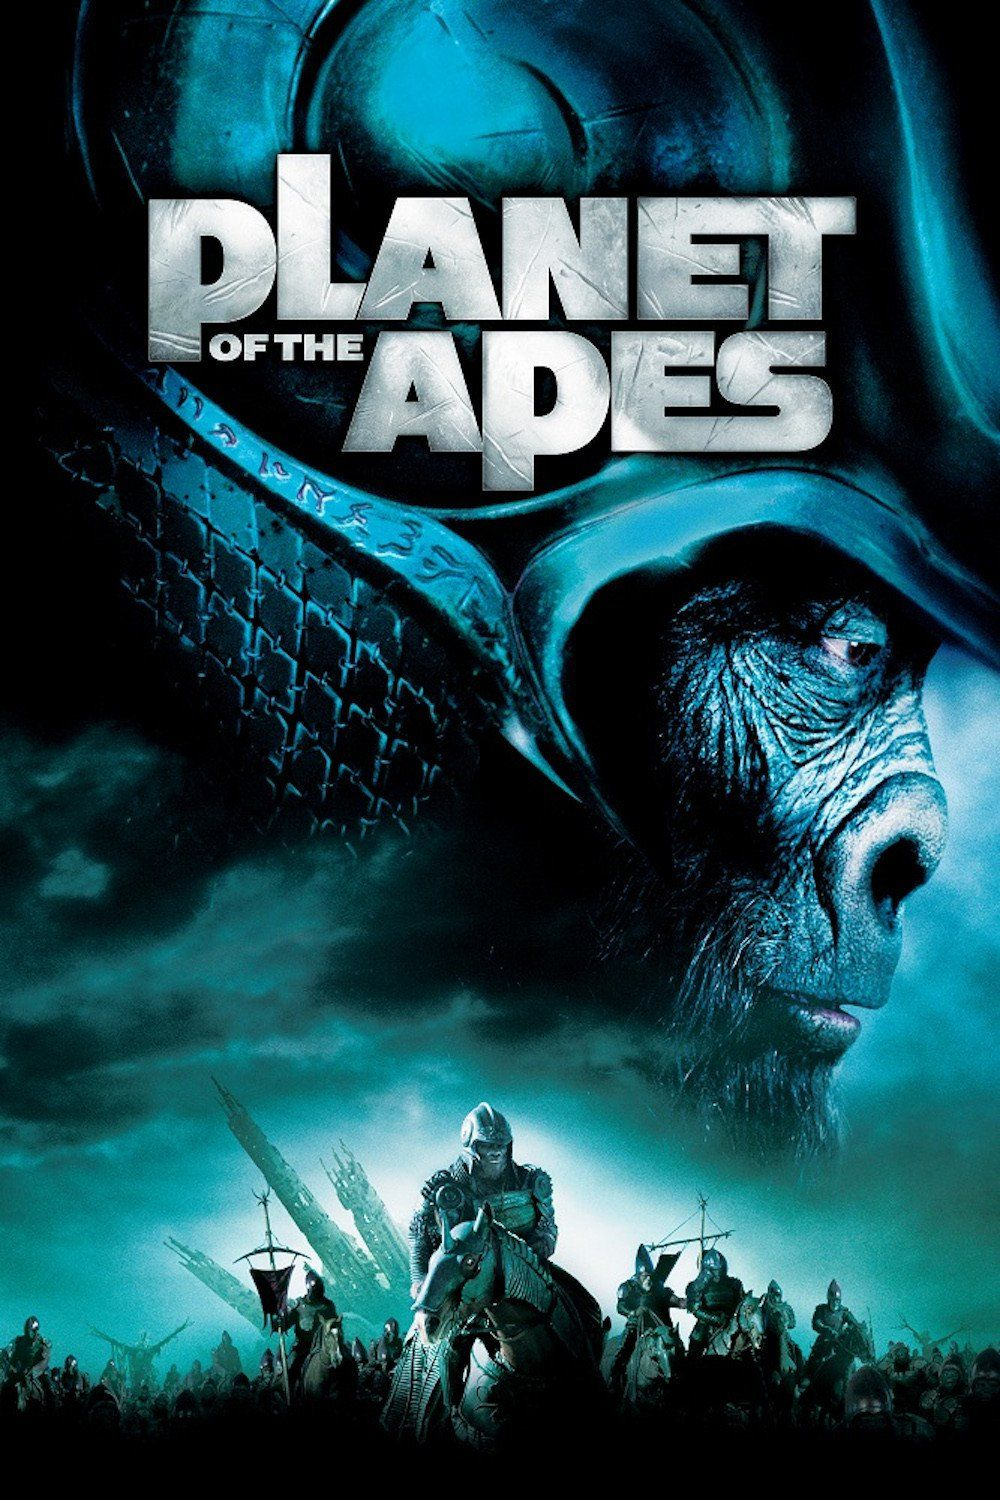 Watch planet of the apes full hd movie online hd movies tv watch planet of the apes full hd movie online hd movies tv publicscrutiny Gallery